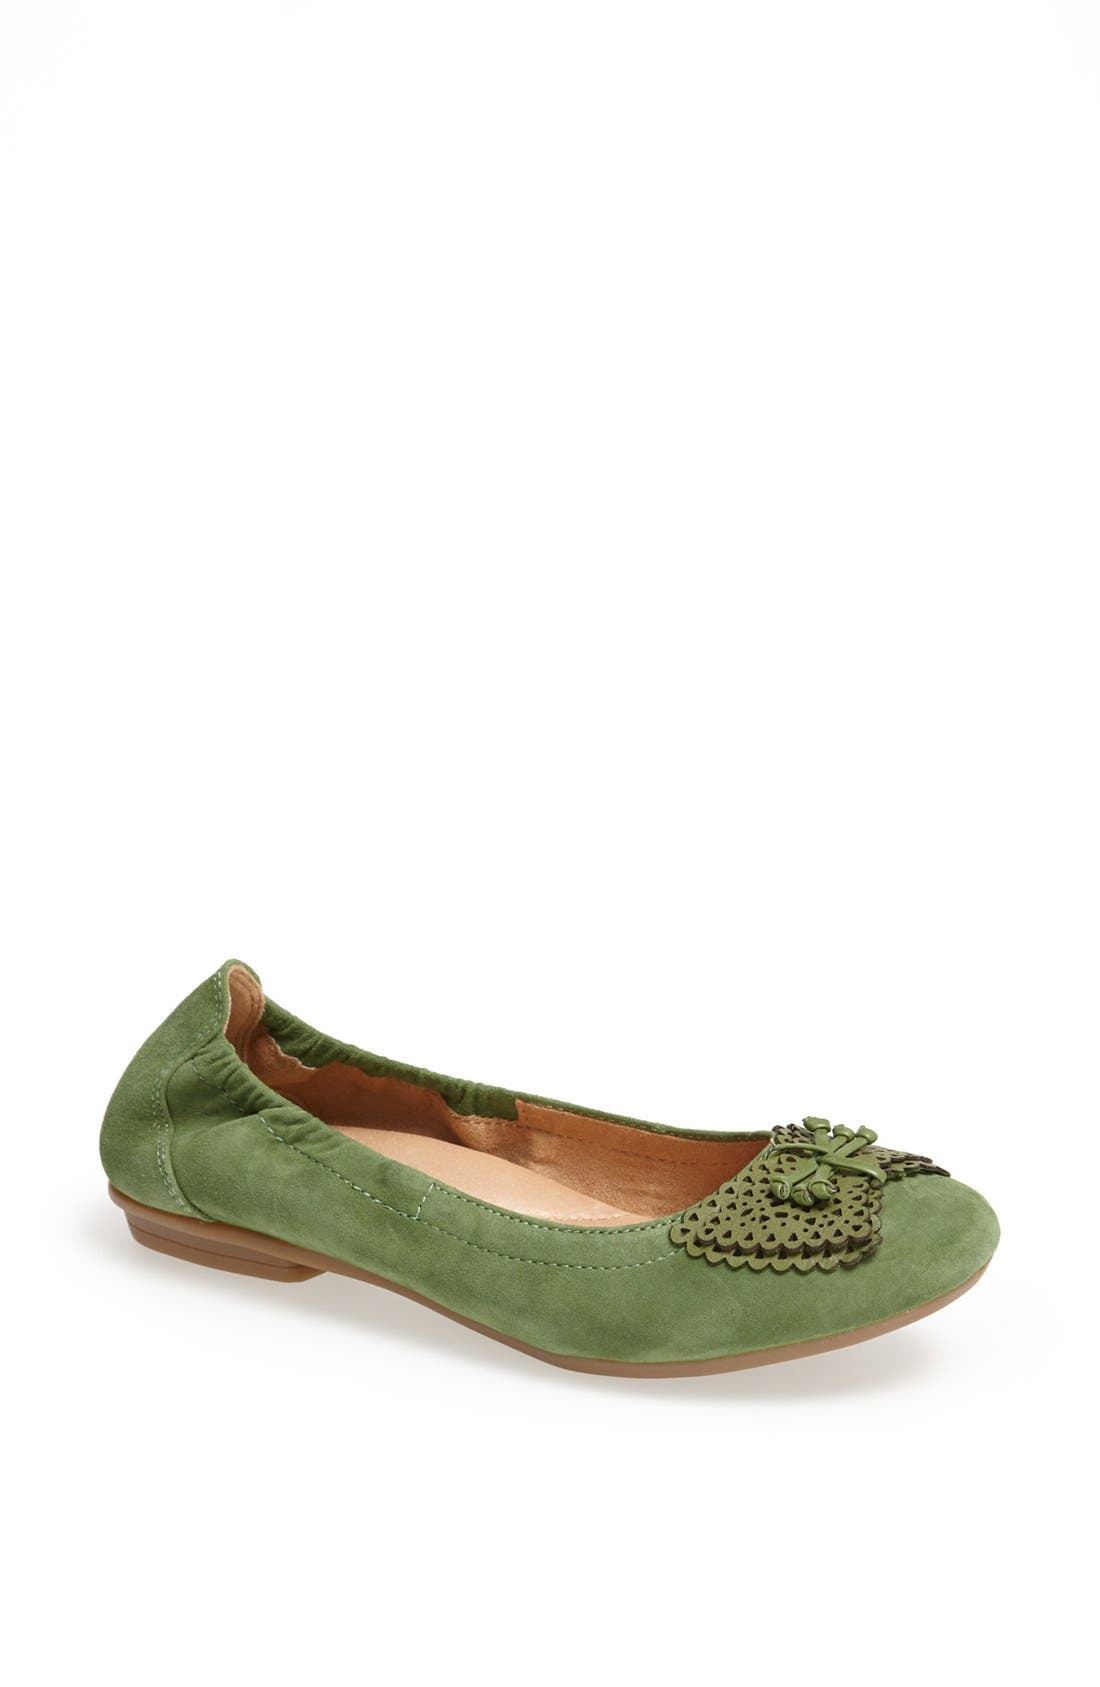 Alternate Image 1 Selected - Earth 'Butterfly' Suede Flat